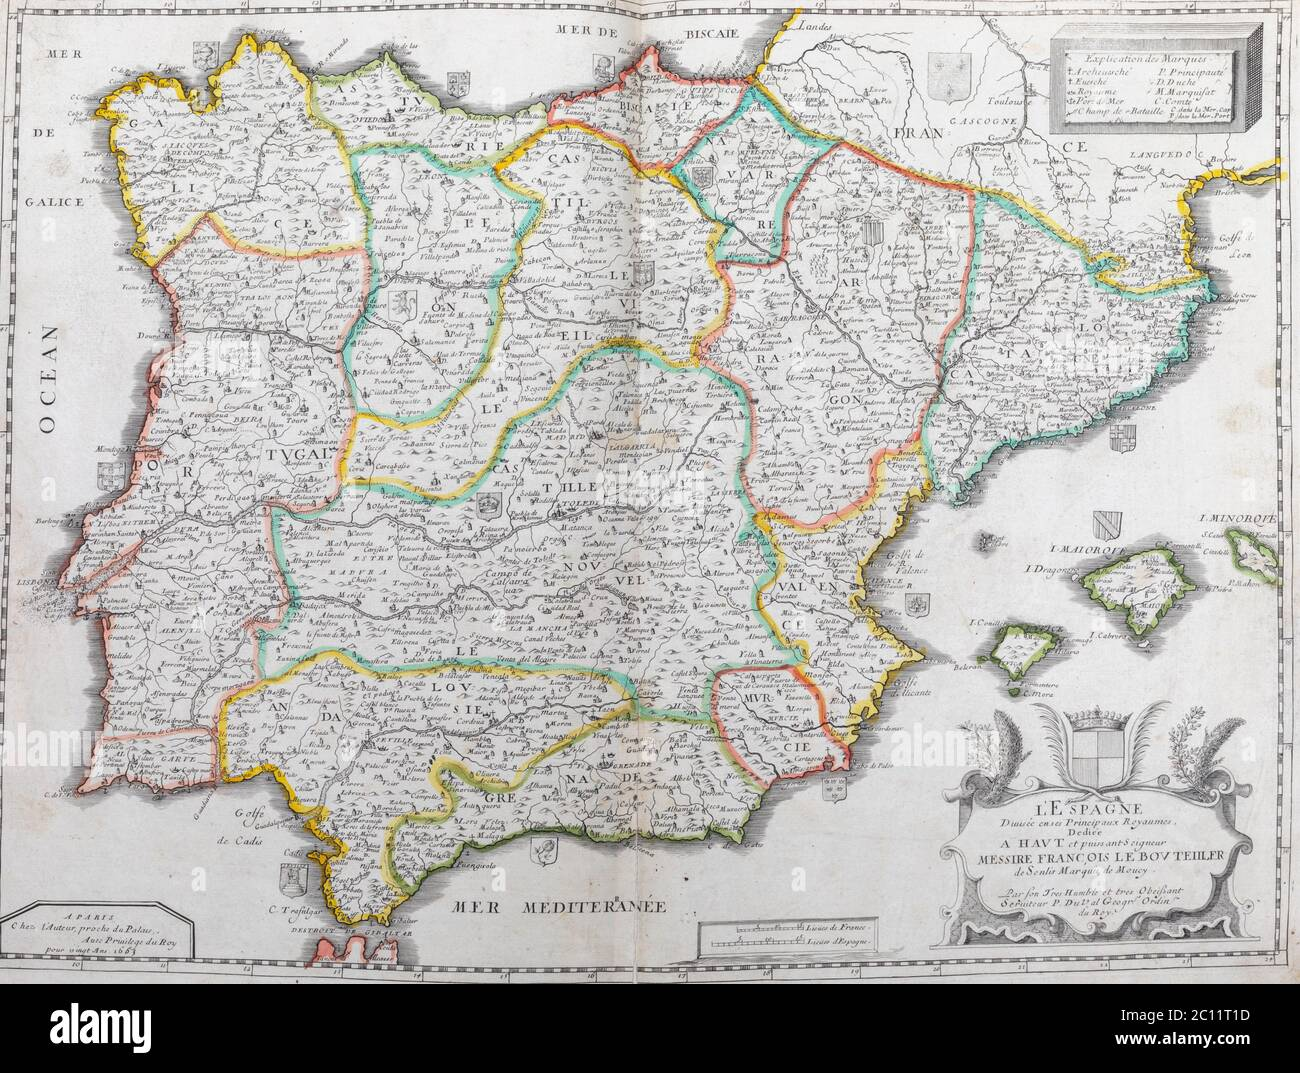 Picture of: Old Map Of Spain And Portugal From An 1656 Atlas Of Geography From P Du Val France Private Collection Stock Photo Alamy